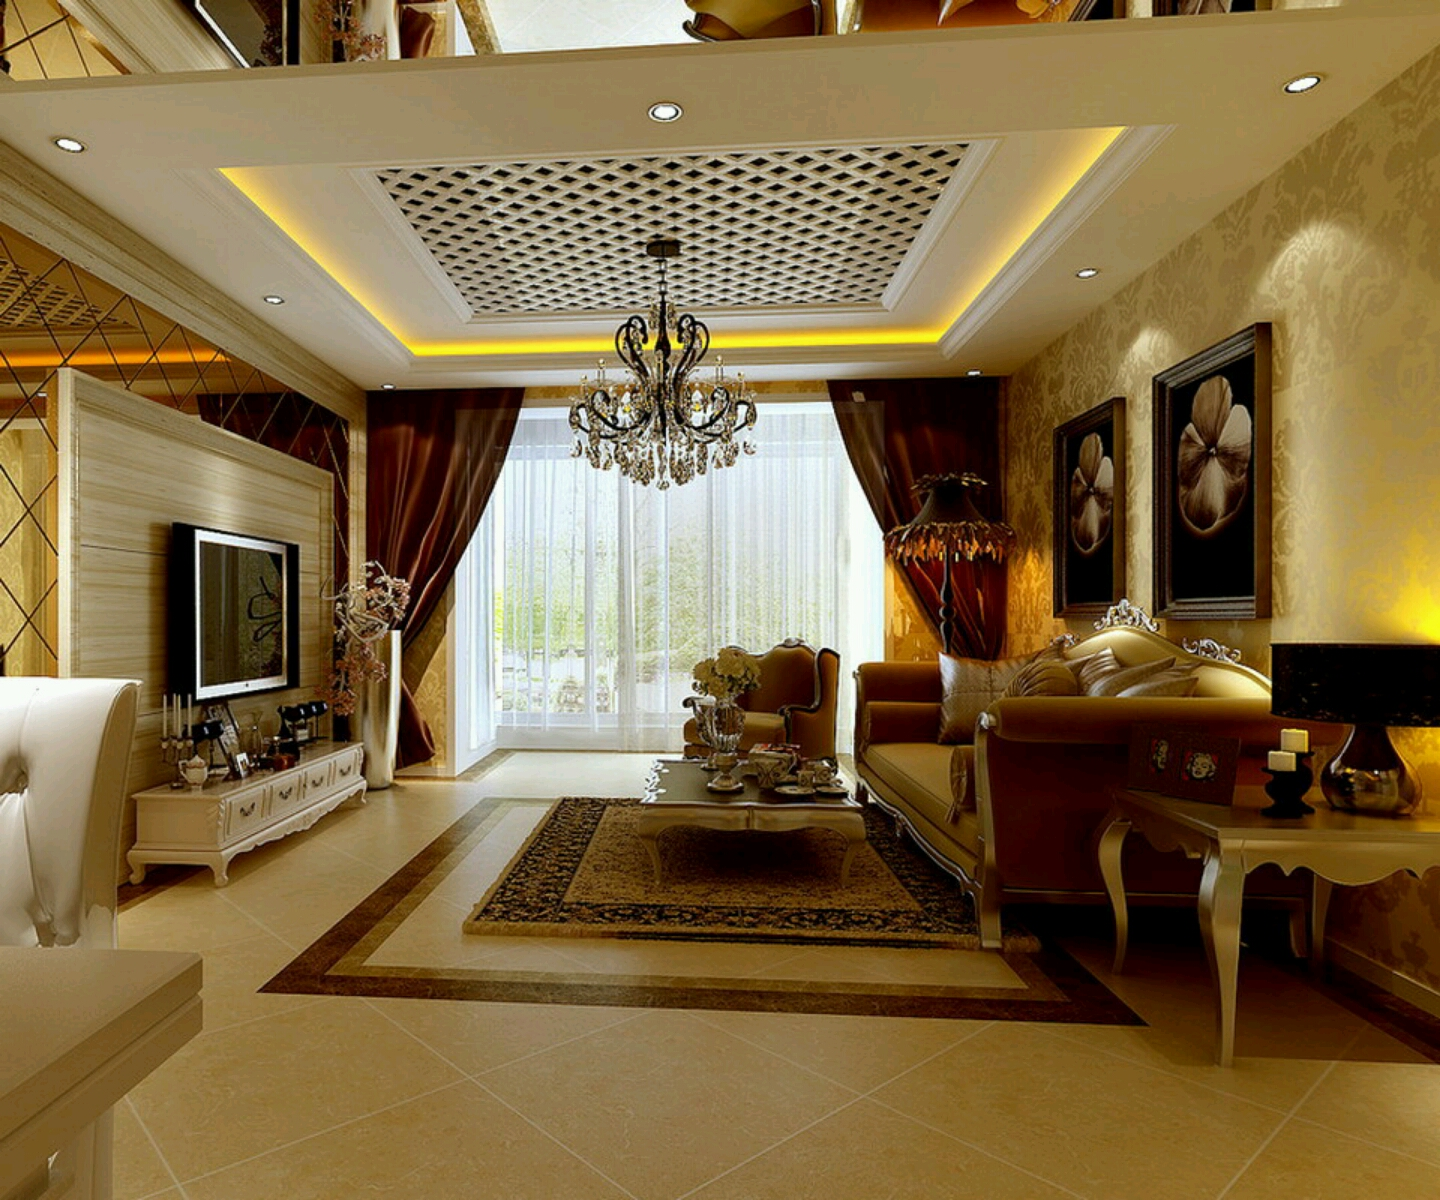 New home designs latest luxury homes interior decoration for Home inner decoration